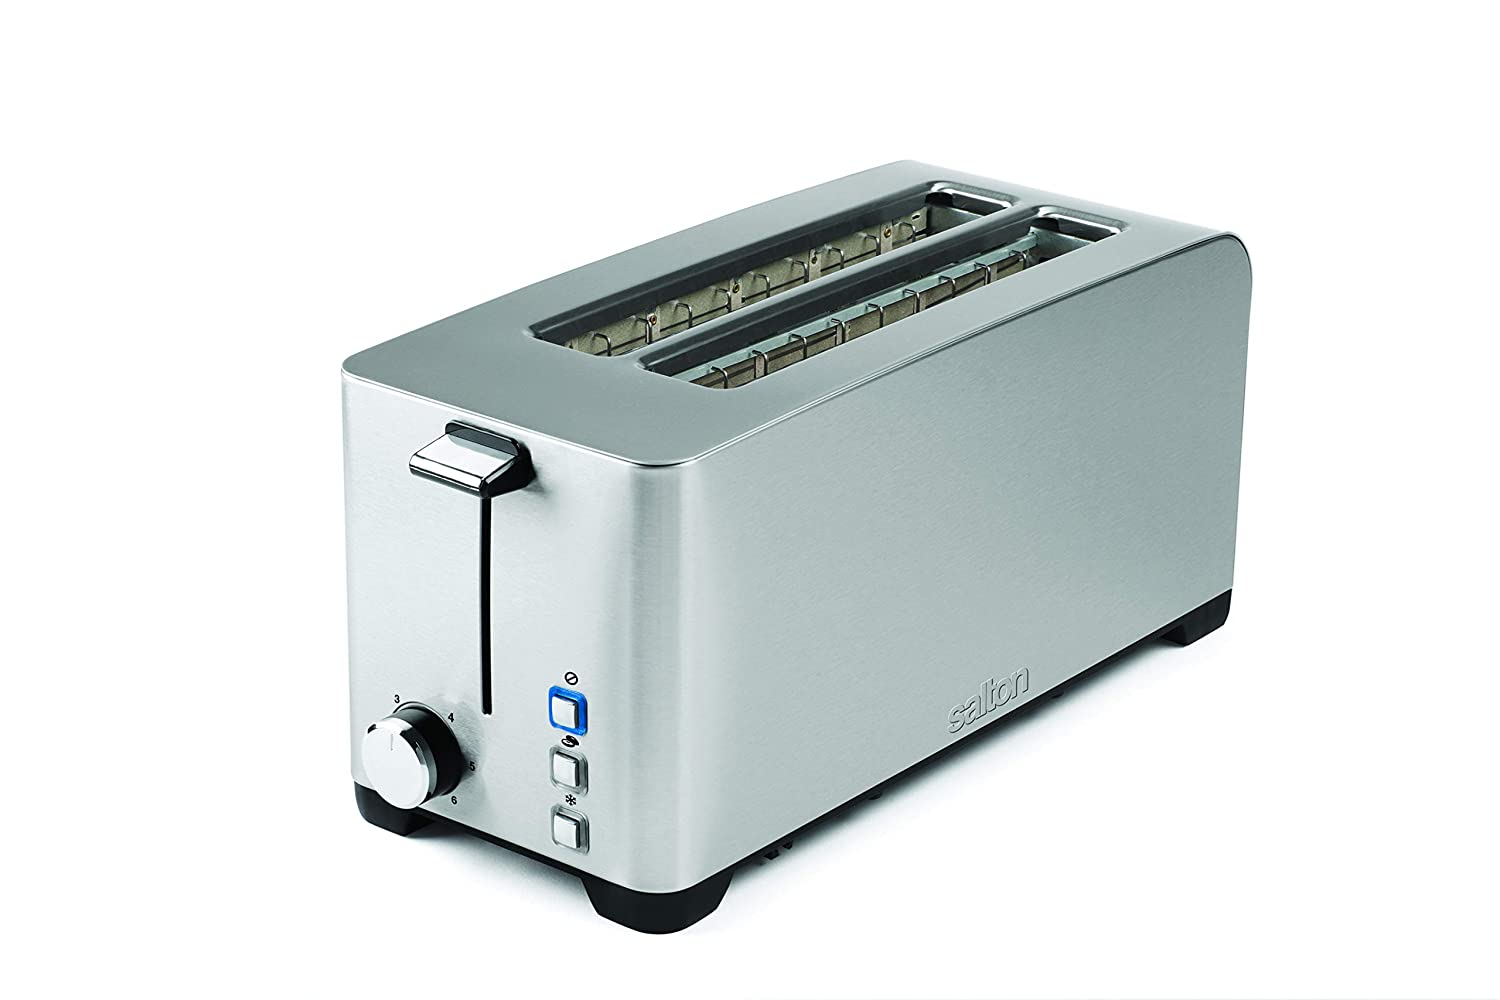 Salton ET1817 Space Saving Long Slot Electric, 4 Slice Toaster Silver